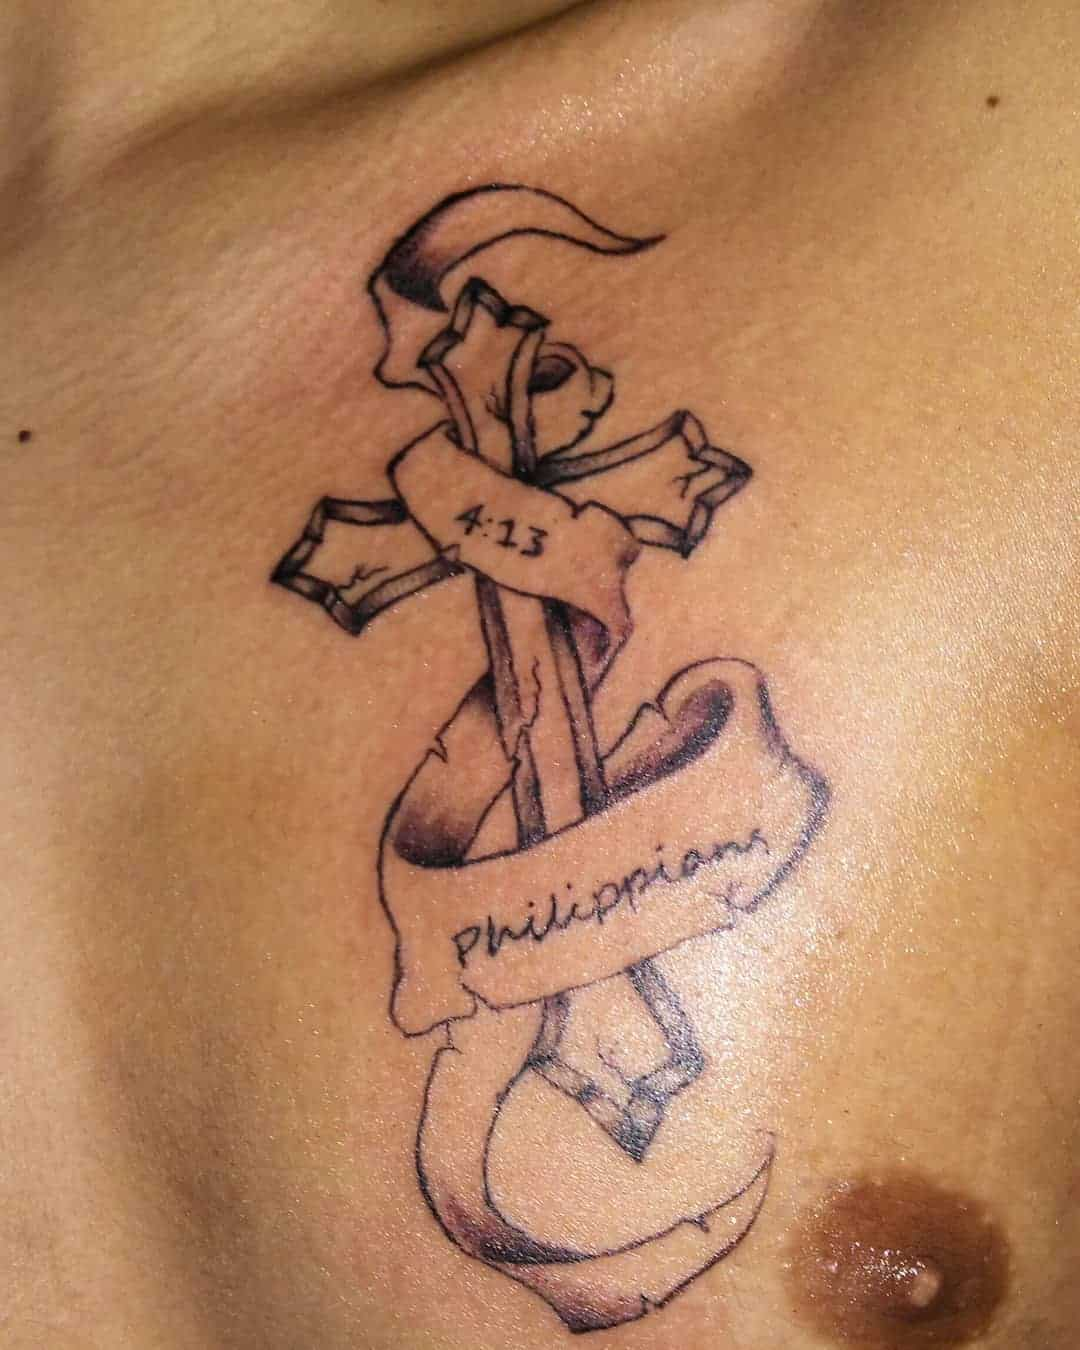 b5e8742824471 The combination of Bible verse with the tattoo enhances the meaning  associated with the design. If you are considering wearing a huge cross  tattoo then ...